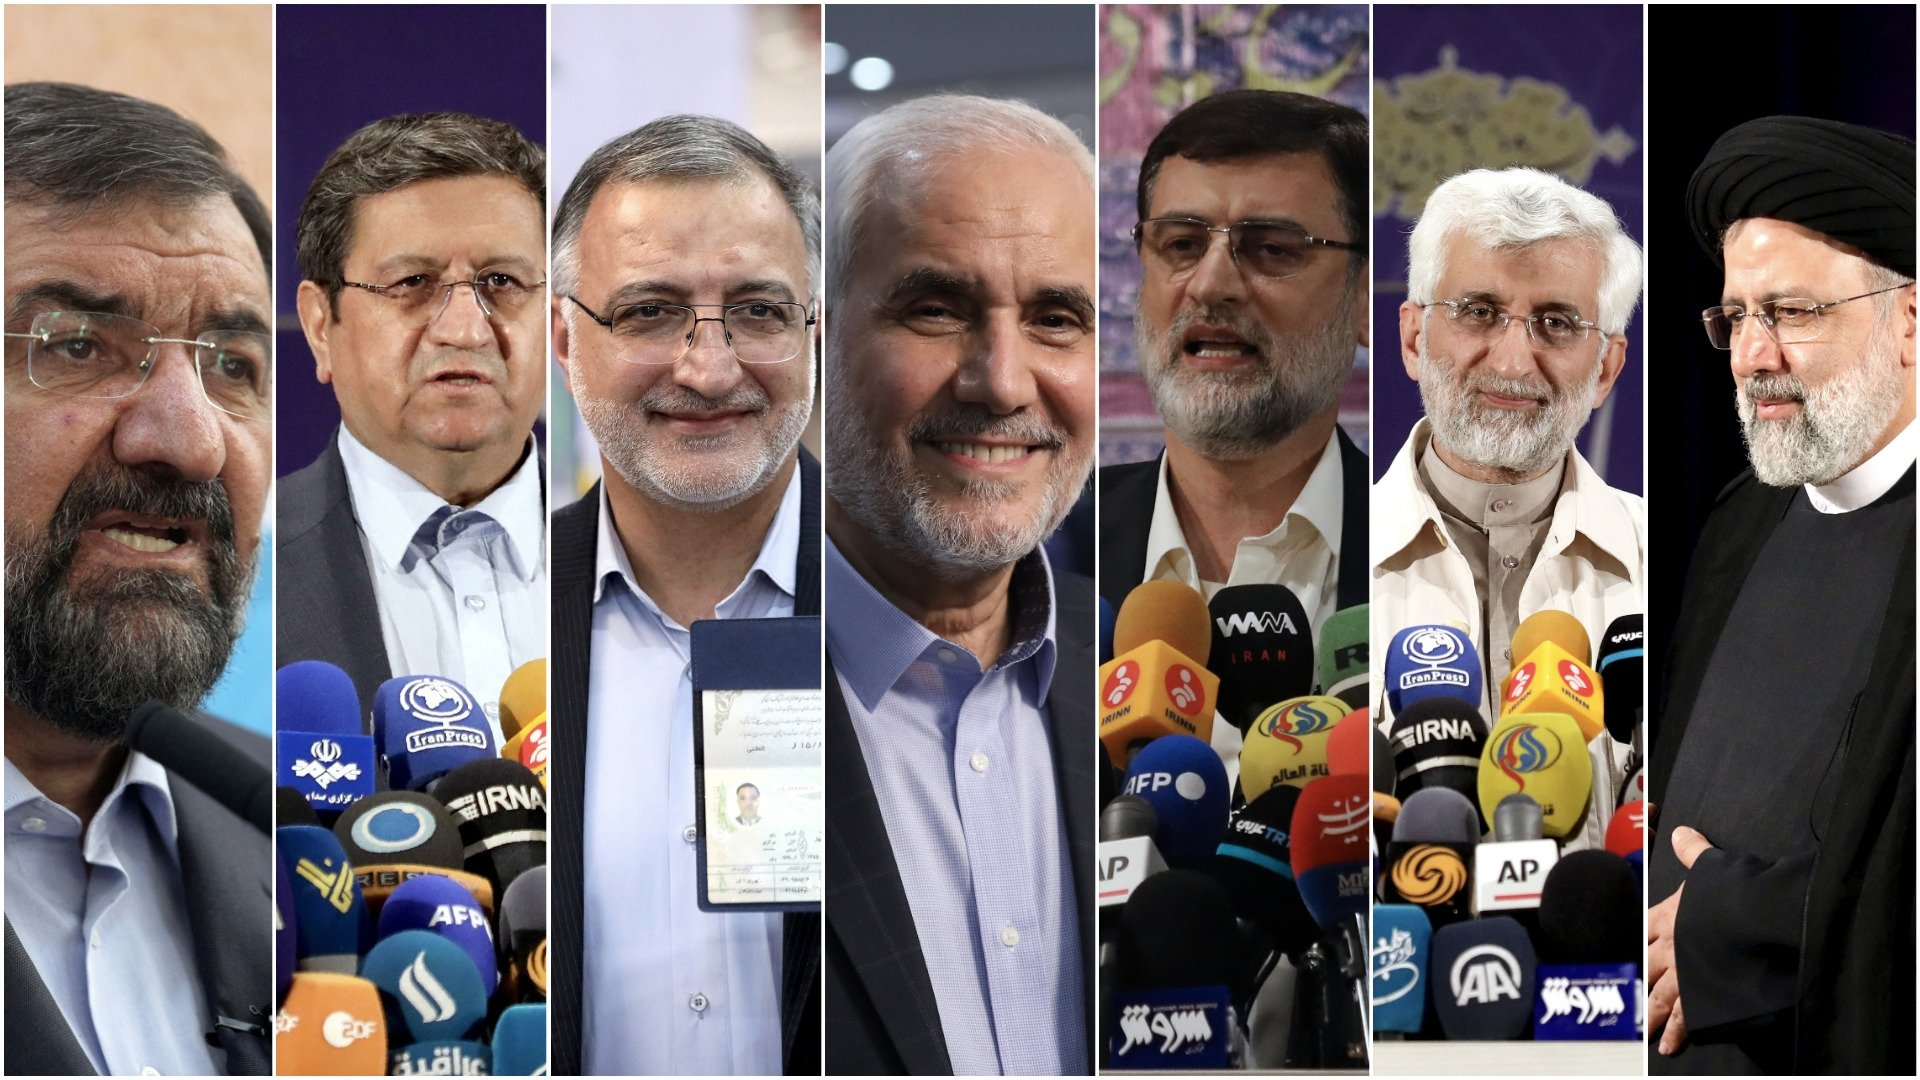 (L to R) Mohsen Rezaei, a former commander of the Revolutionary Guard; Abdolnasser Hemmati, head of the central bank of Iran; Alireza Zakani, a former lawmaker; Mohsen Mehralizadeh, a former provincial governor; Amir Hossein Ghazizadeh Hashemi, deputy Parliament Speaker; Saeed Jalili, former top nuclear negotiator, and Ebrahim Raisi, head of the Judiciary – in this combination of seven photos of approved candidates for the Iranian presidential elections to be held June 18, 2021. (AP Photo)